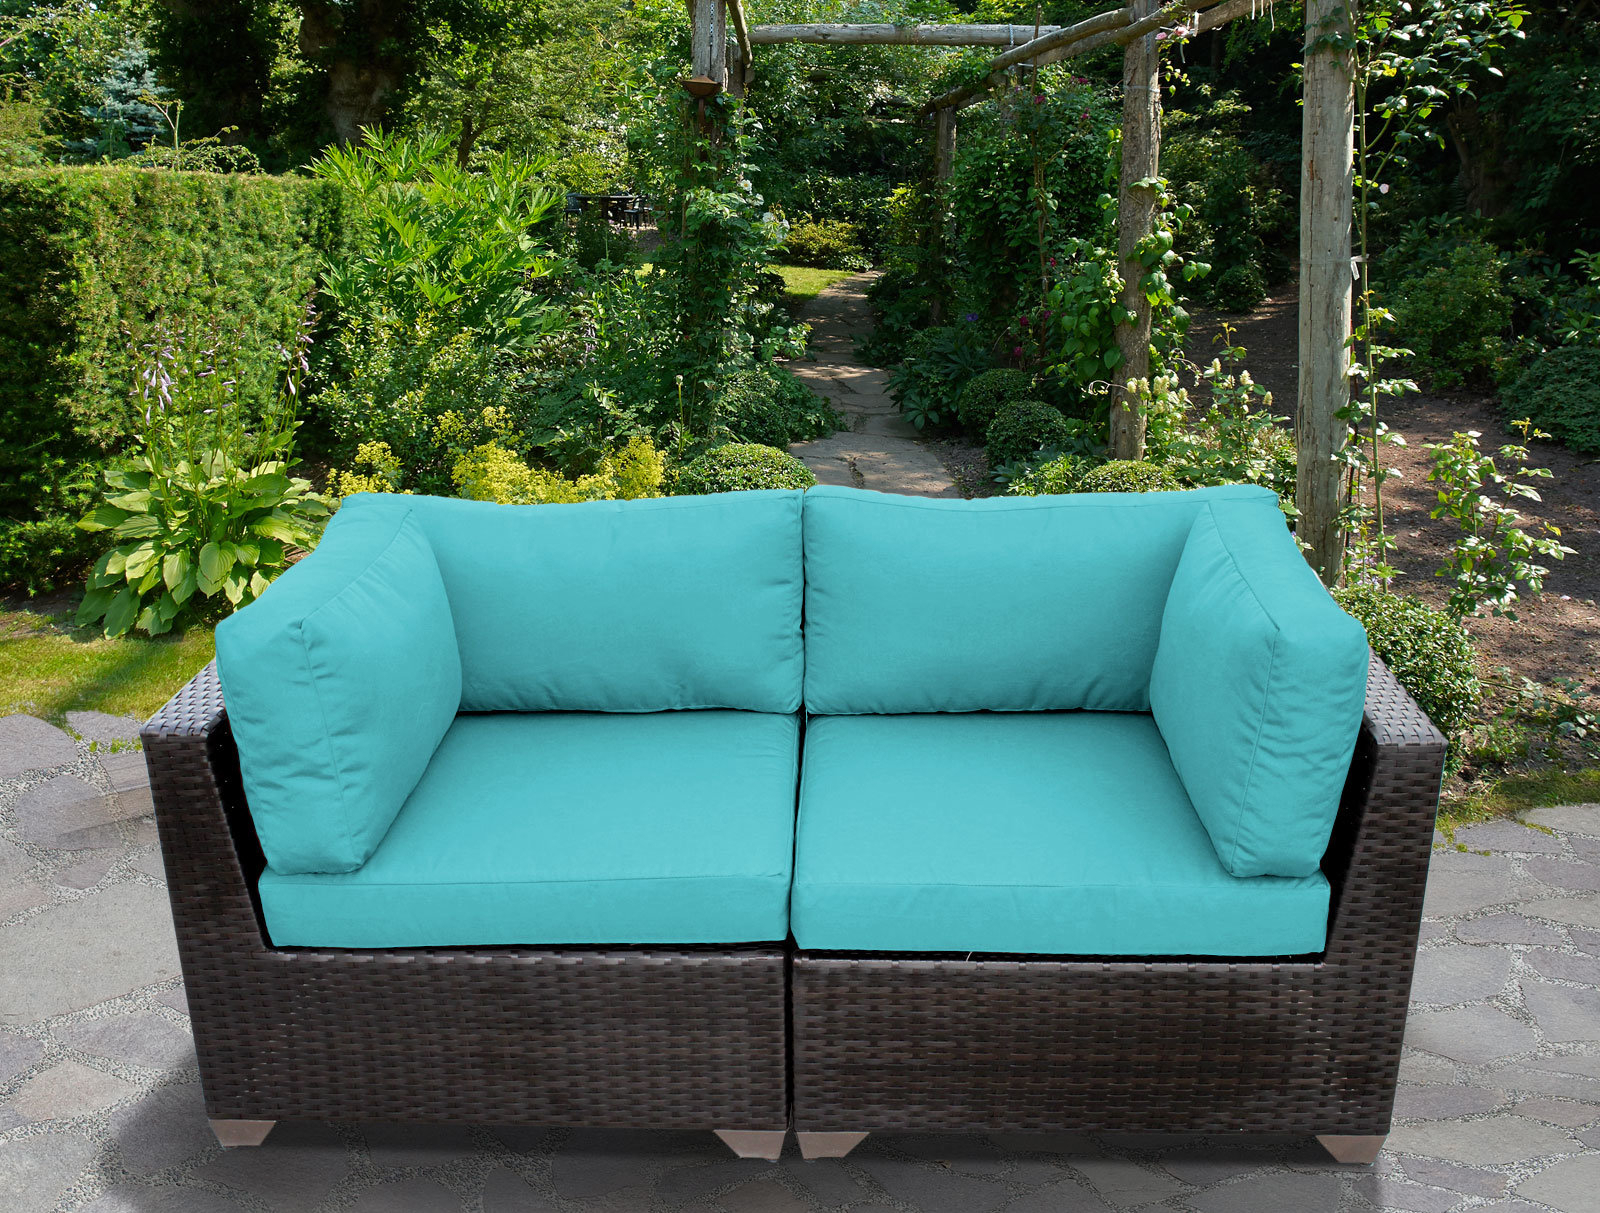 Preferred Camak Patio Loveseat With Cushions Throughout Belton Loveseats With Cushions (View 20 of 25)